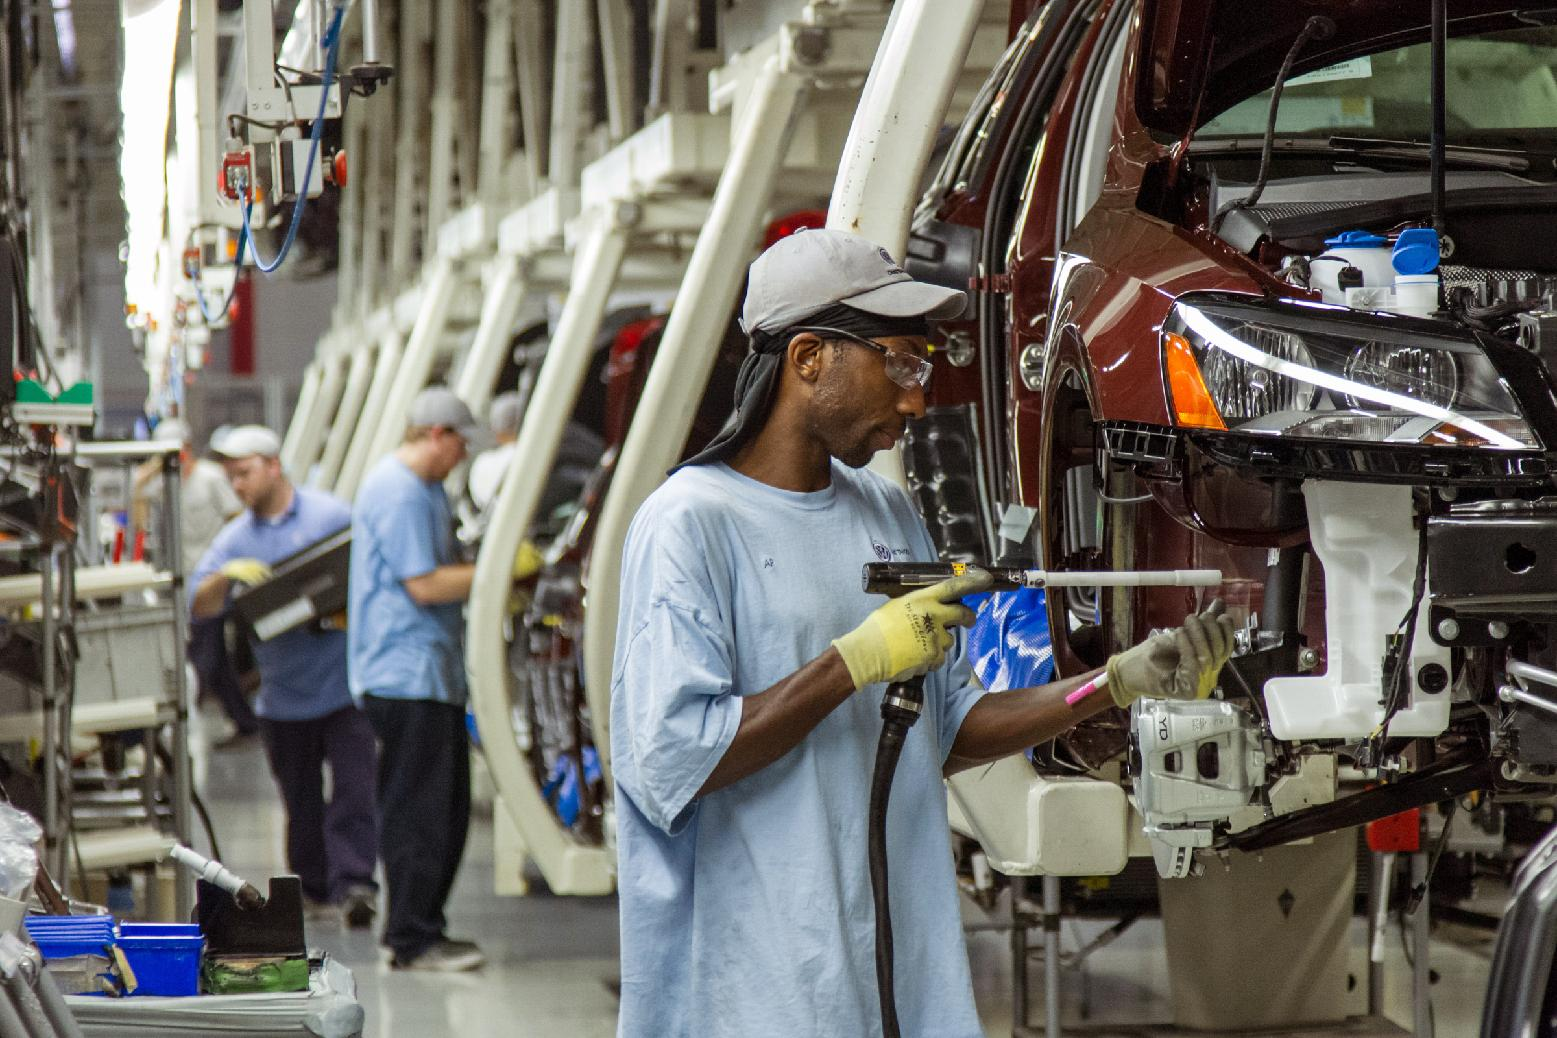 UAW and Volkswagen reach 'Consensus' on union. (AP Photo/ Erik Schelzig, file)